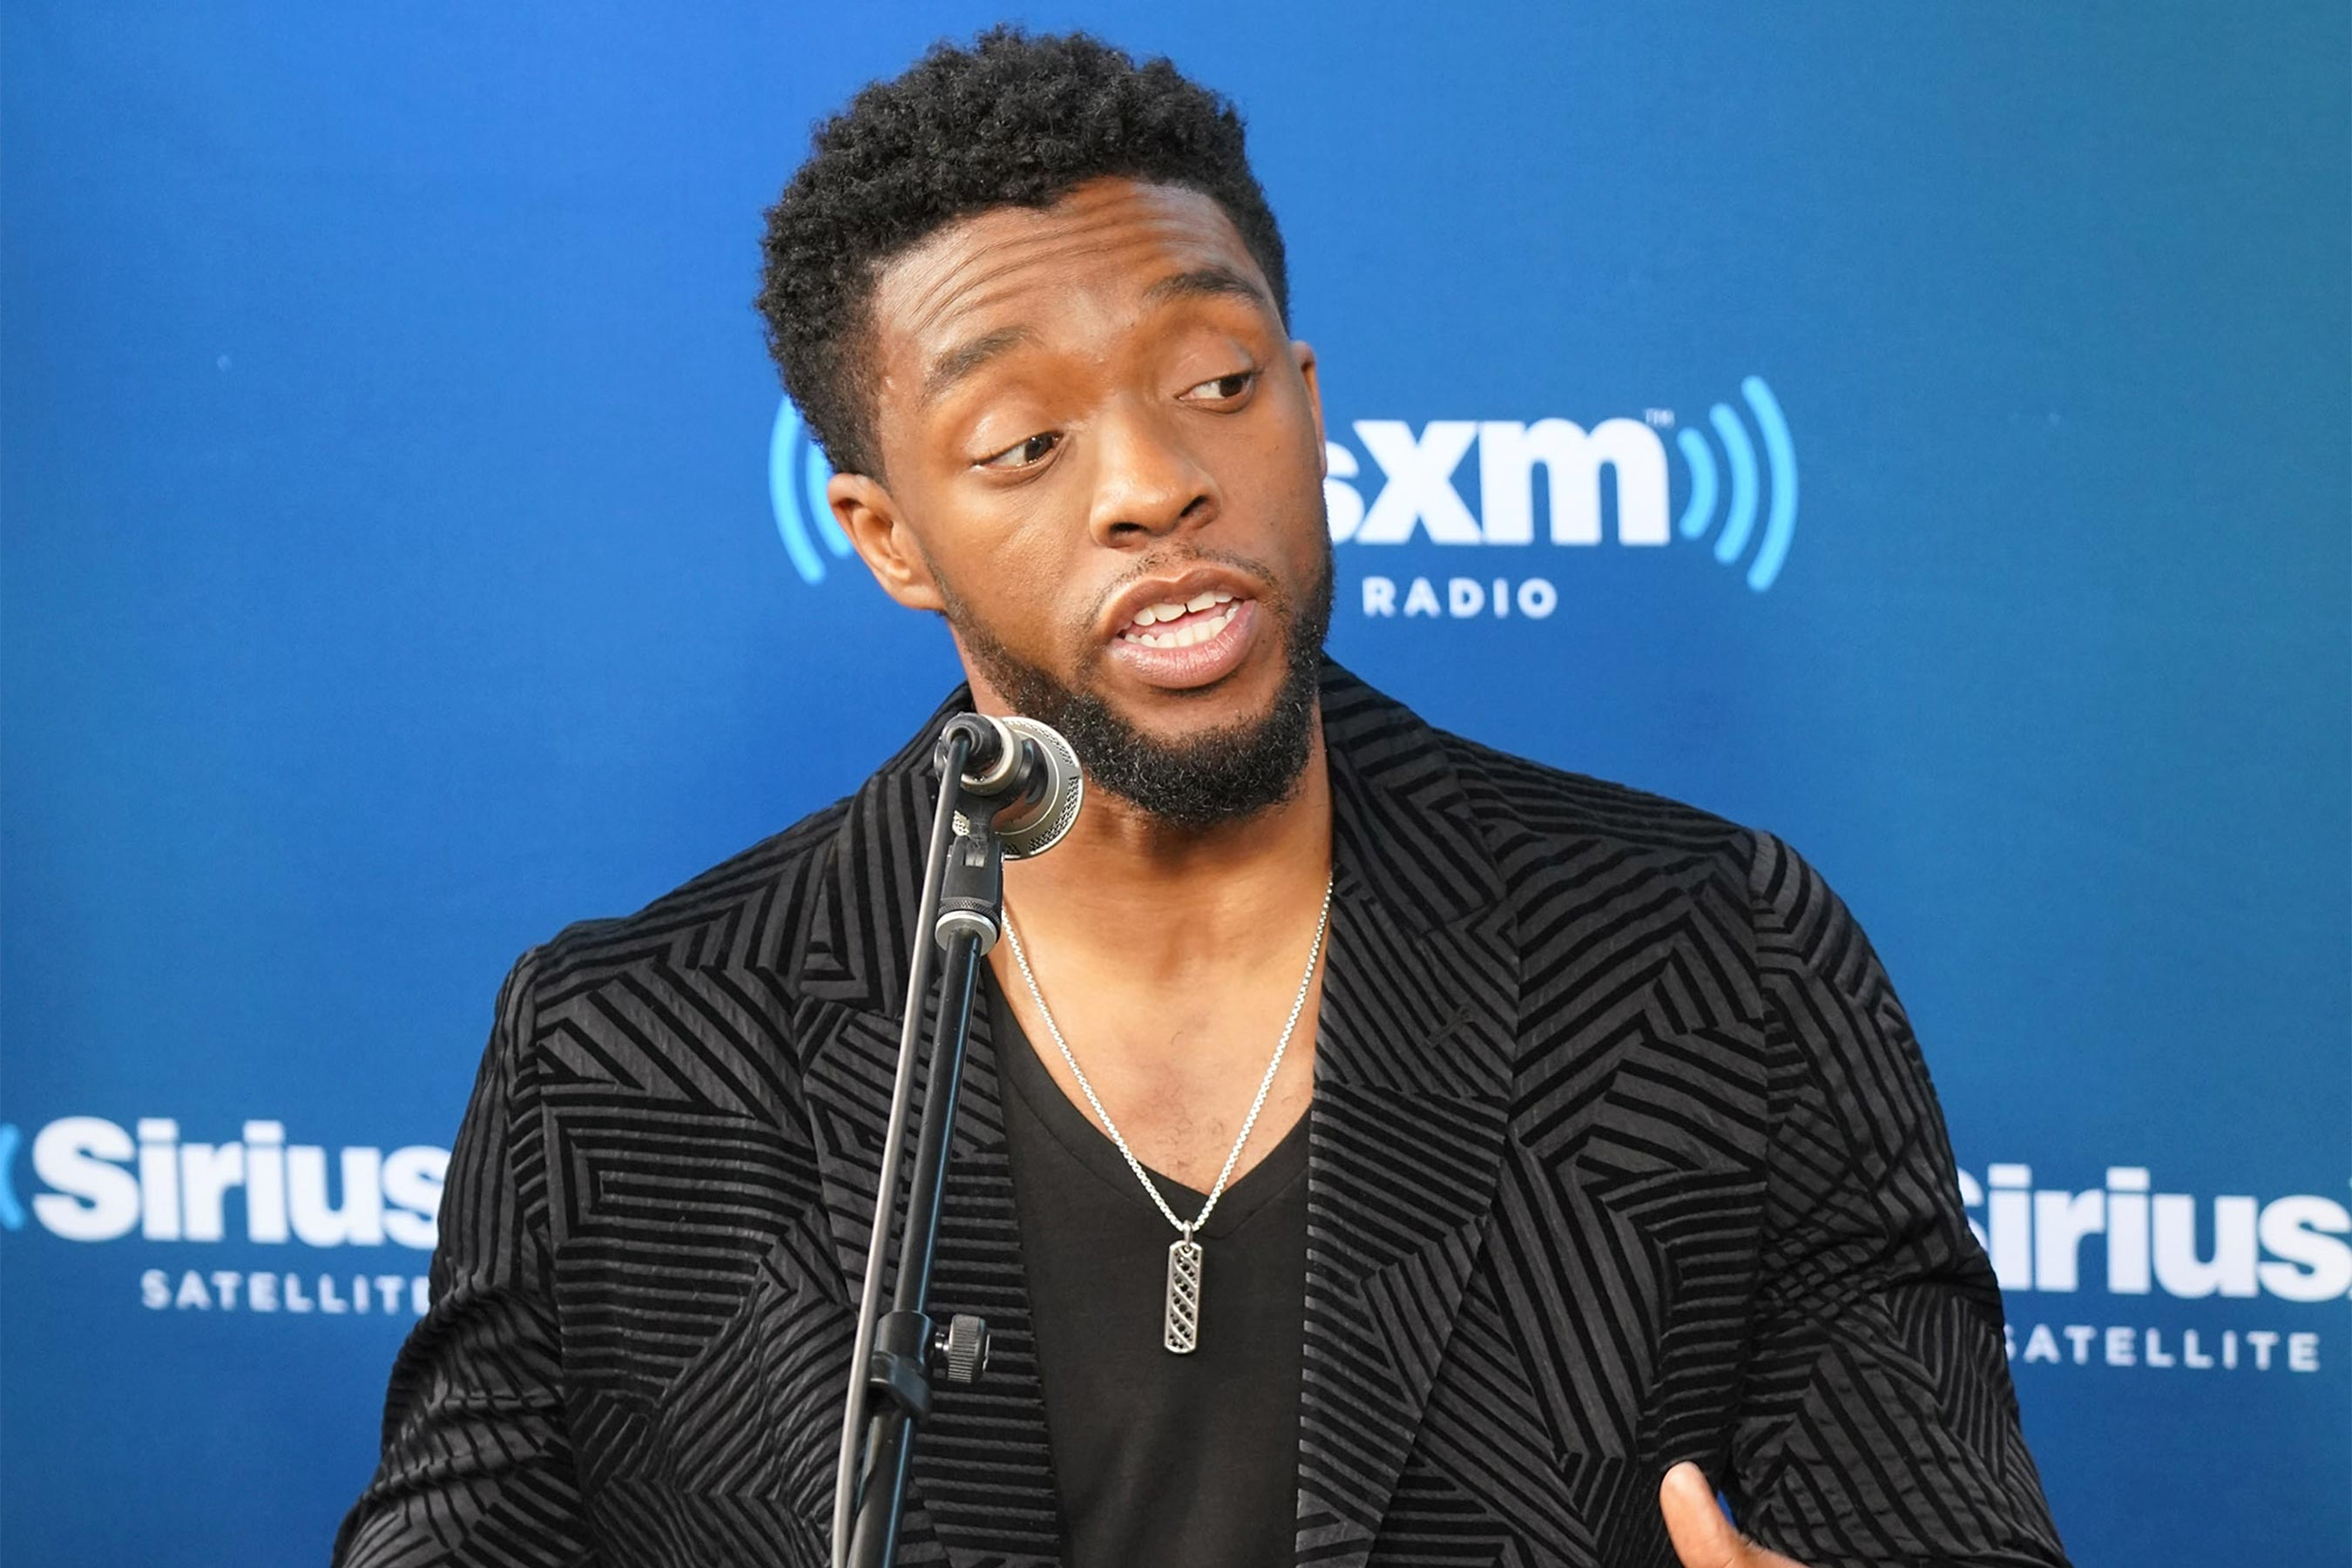 Black Panther: Chadwick Boseman gets emotional discussing film's impact